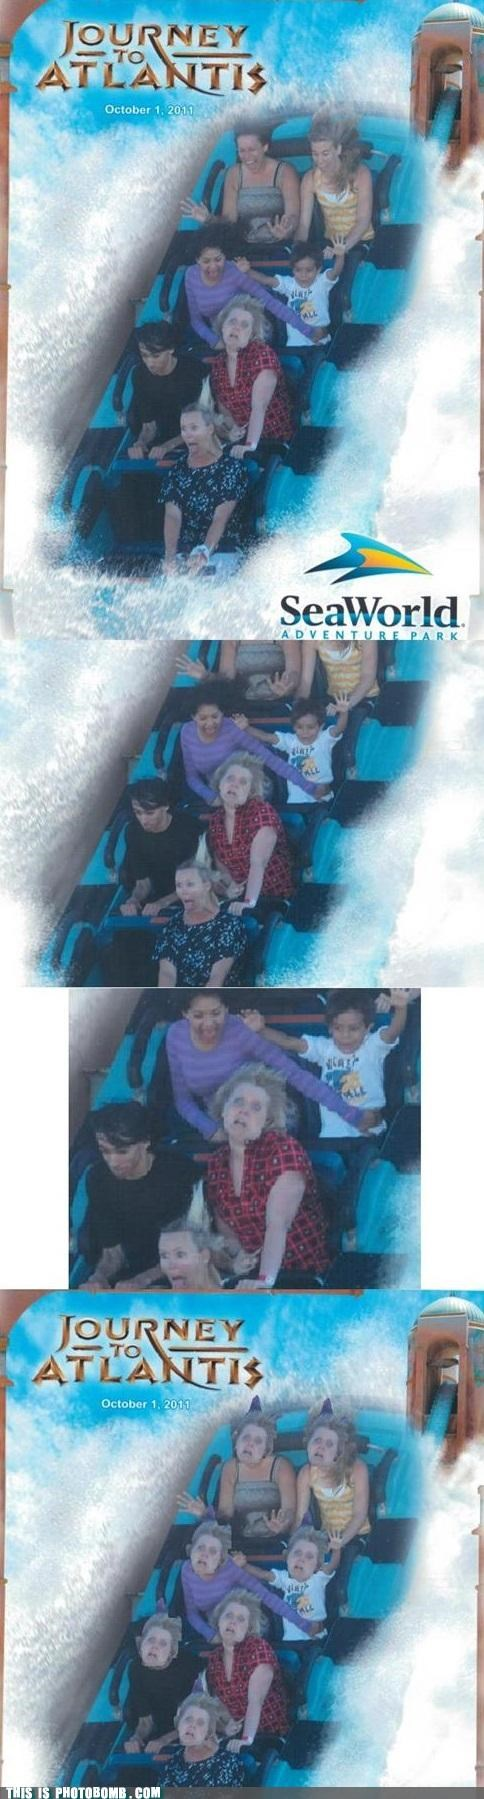 eyes flashed Reframe ride scared theme park water park - 5293346560